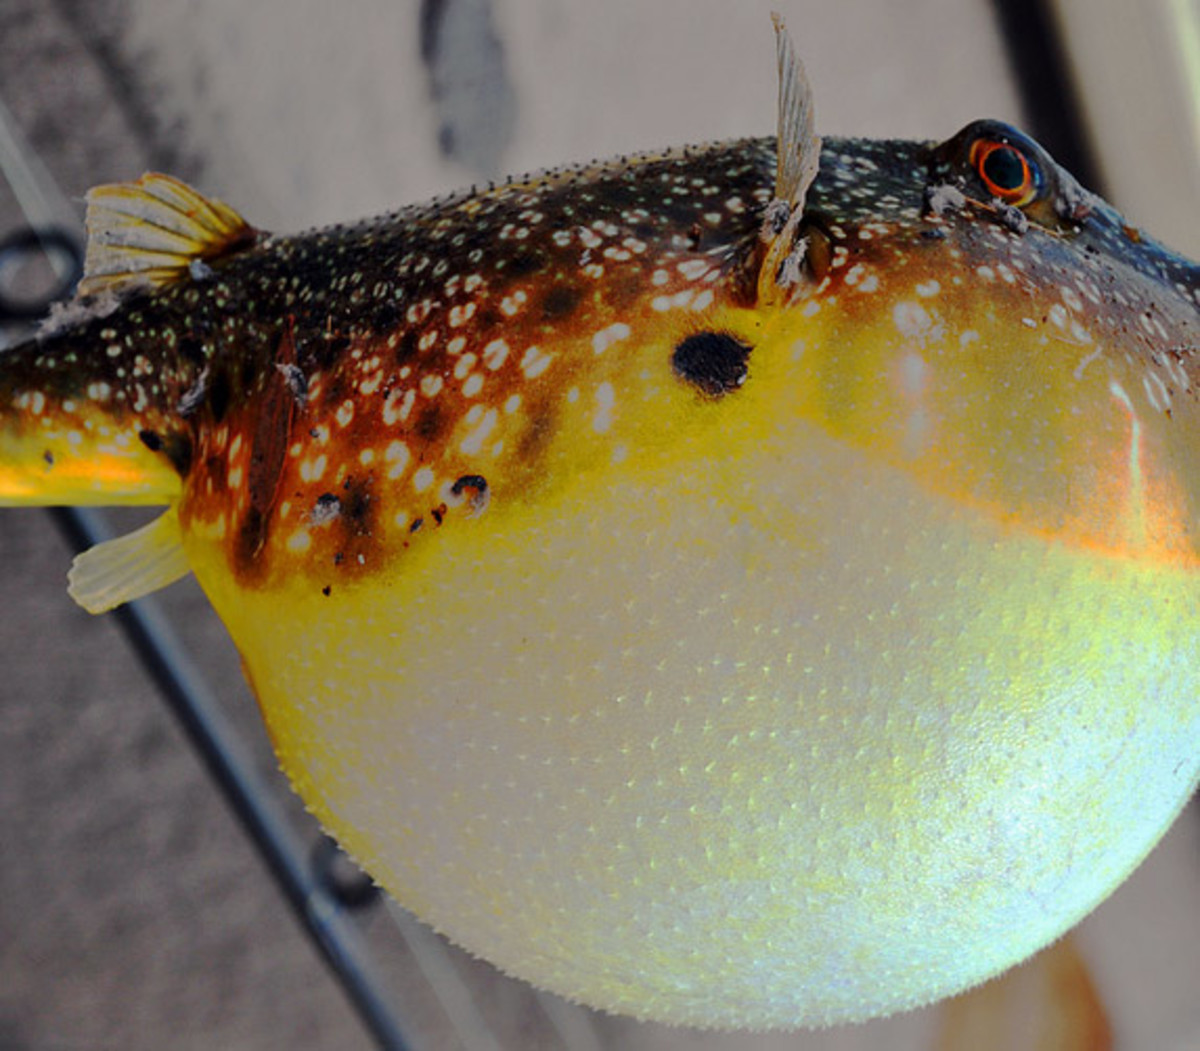 If you've ever been bloated, you'll understand how this puffer fish feels...